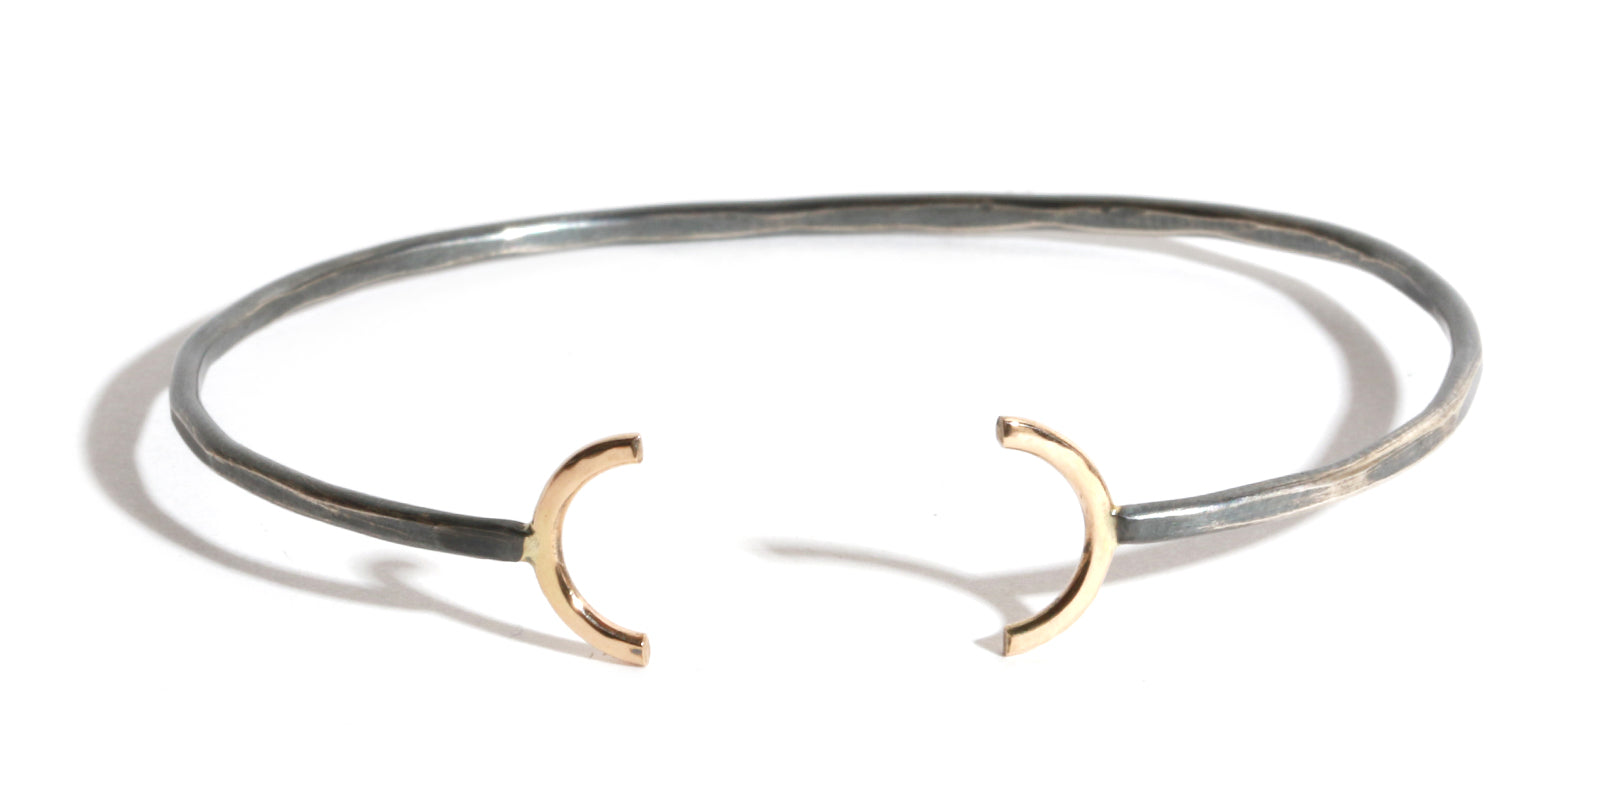 Open Semi Circle Cuff - Melissa Joy Manning Jewelry